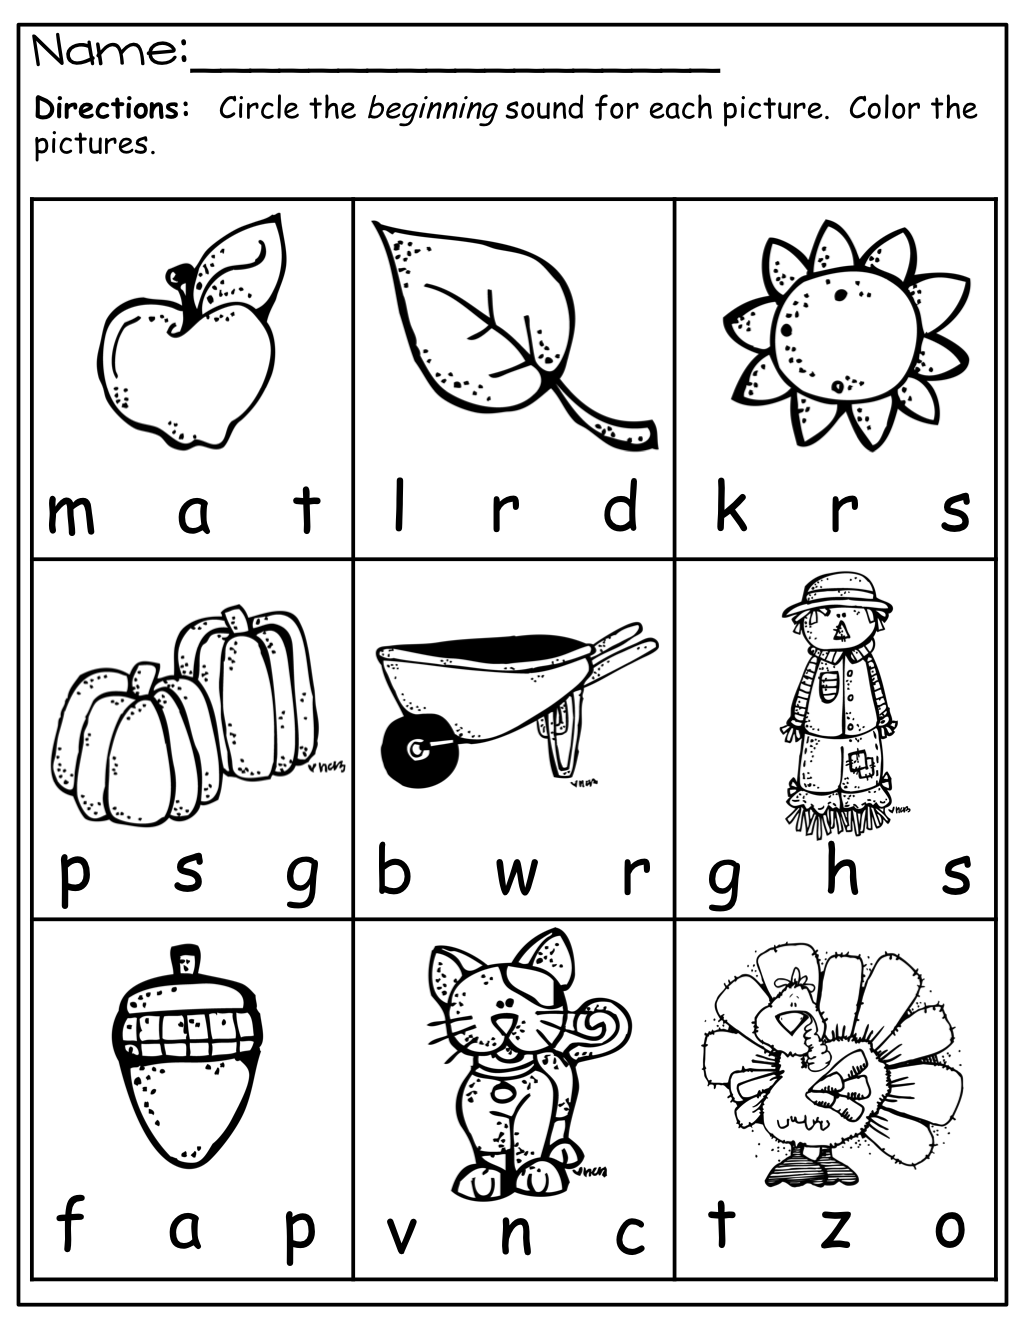 Teacherspayteachers Product Fall Math And Literacy Packet Kindergarten 6